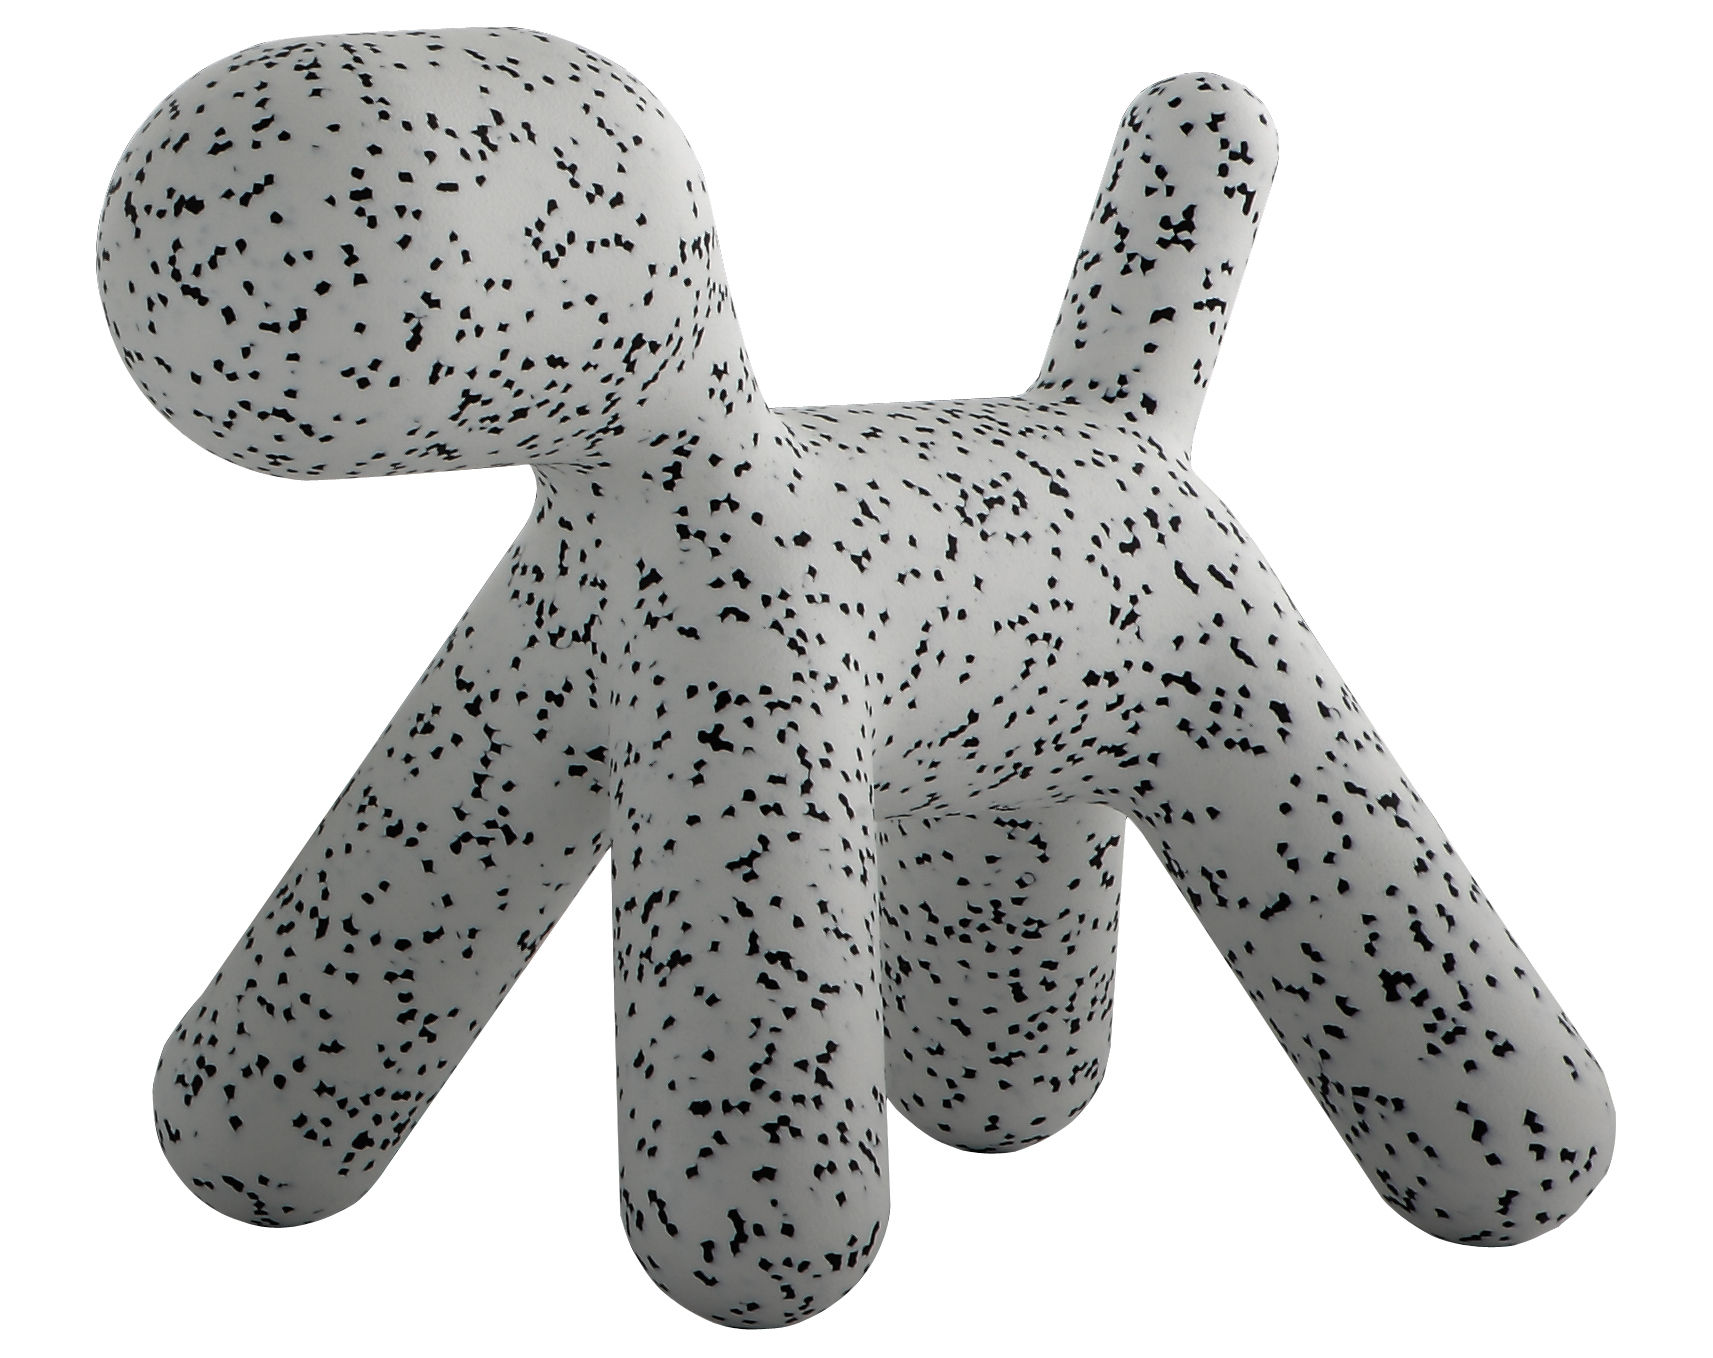 Furniture - Kids Furniture - Puppy Large Children's chair - / Large - L 69 cm by Magis Collection Me Too - White / Black mottled - roto-moulded polyhene